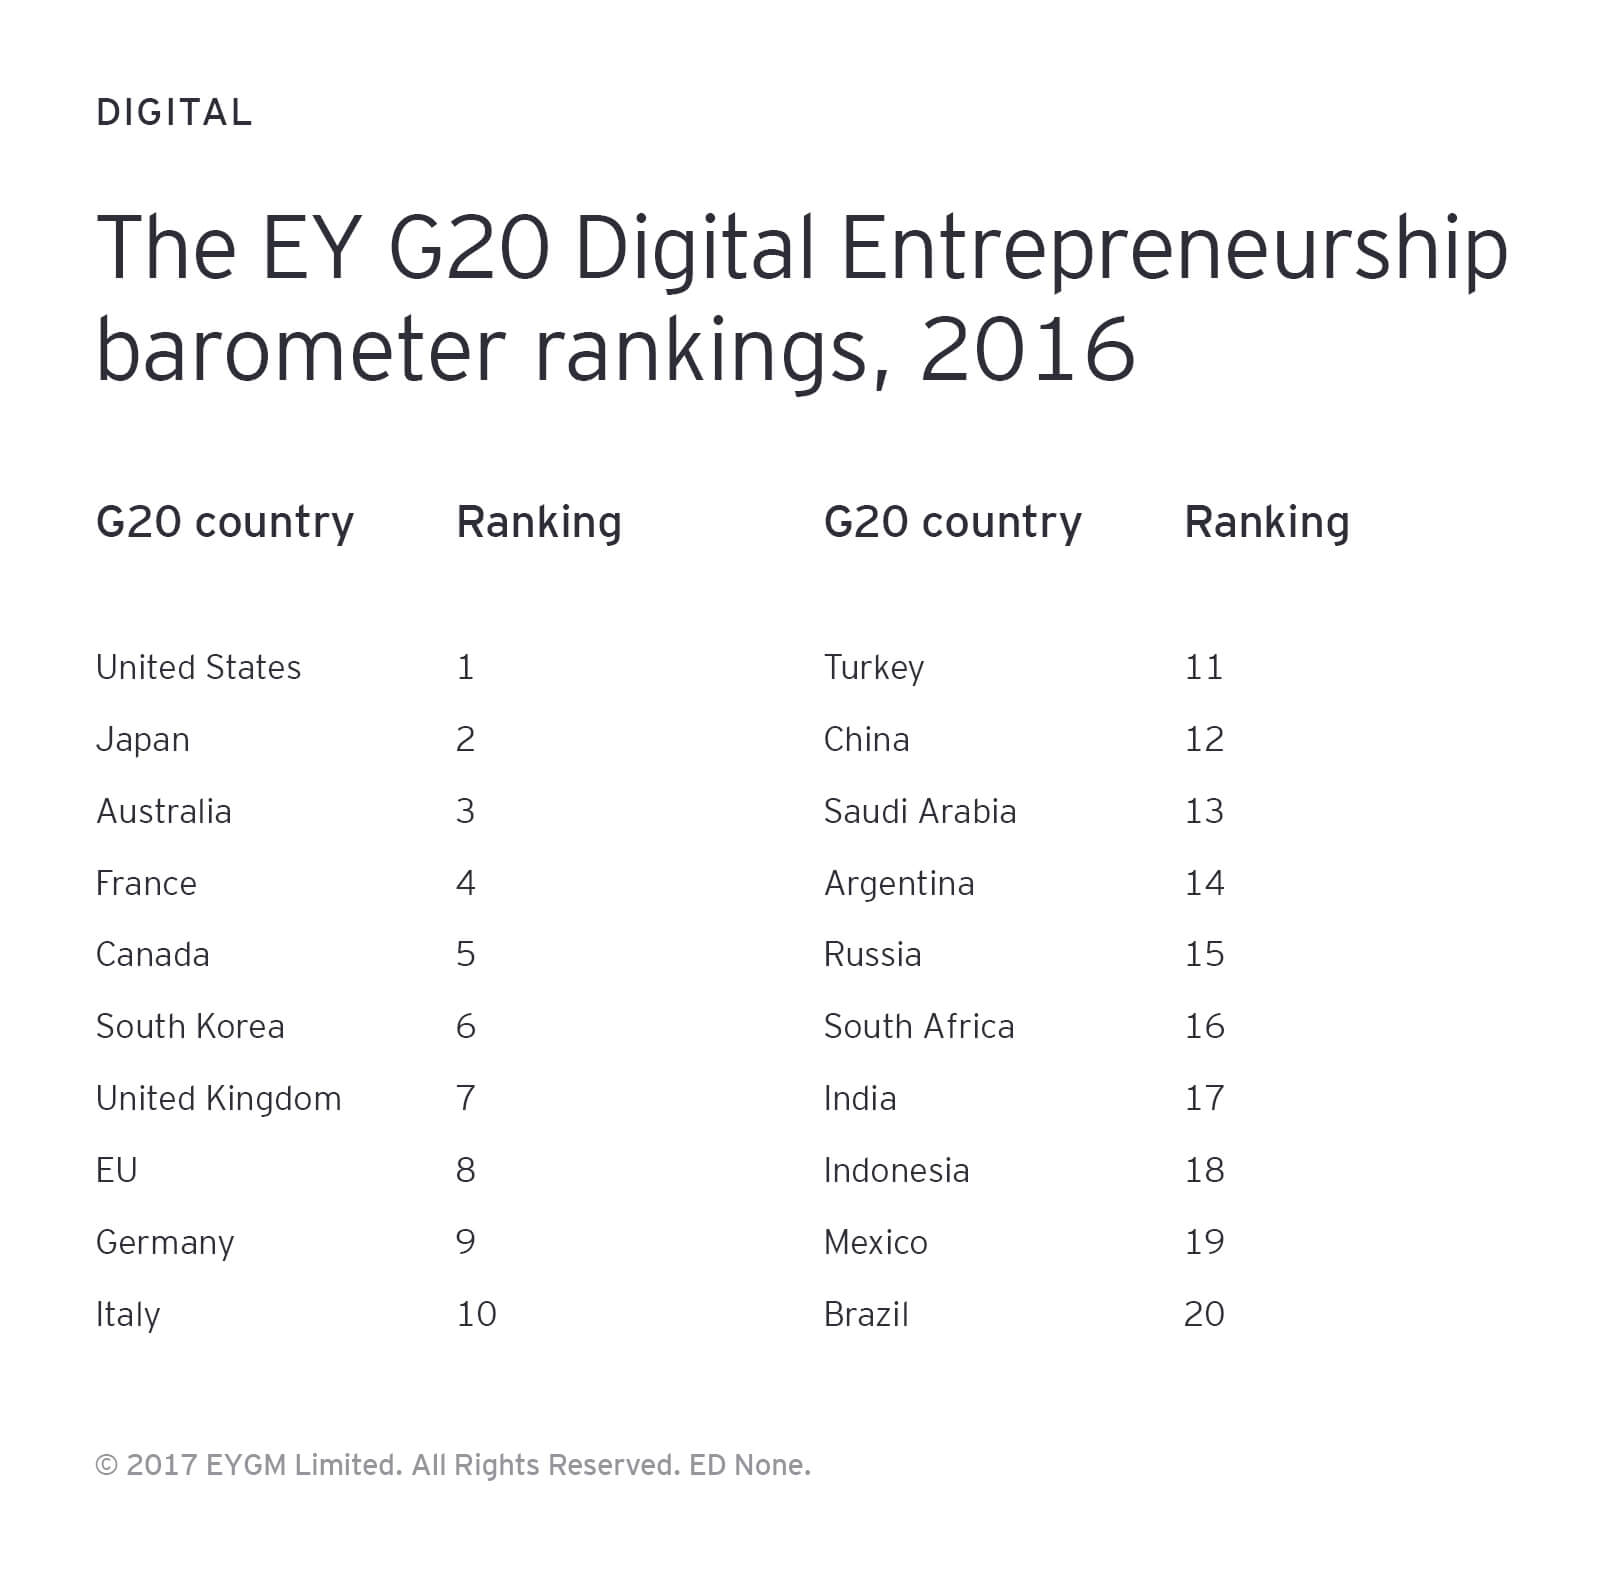 The EY G20 Digital Entrepreneurship barometer rankings, 2016